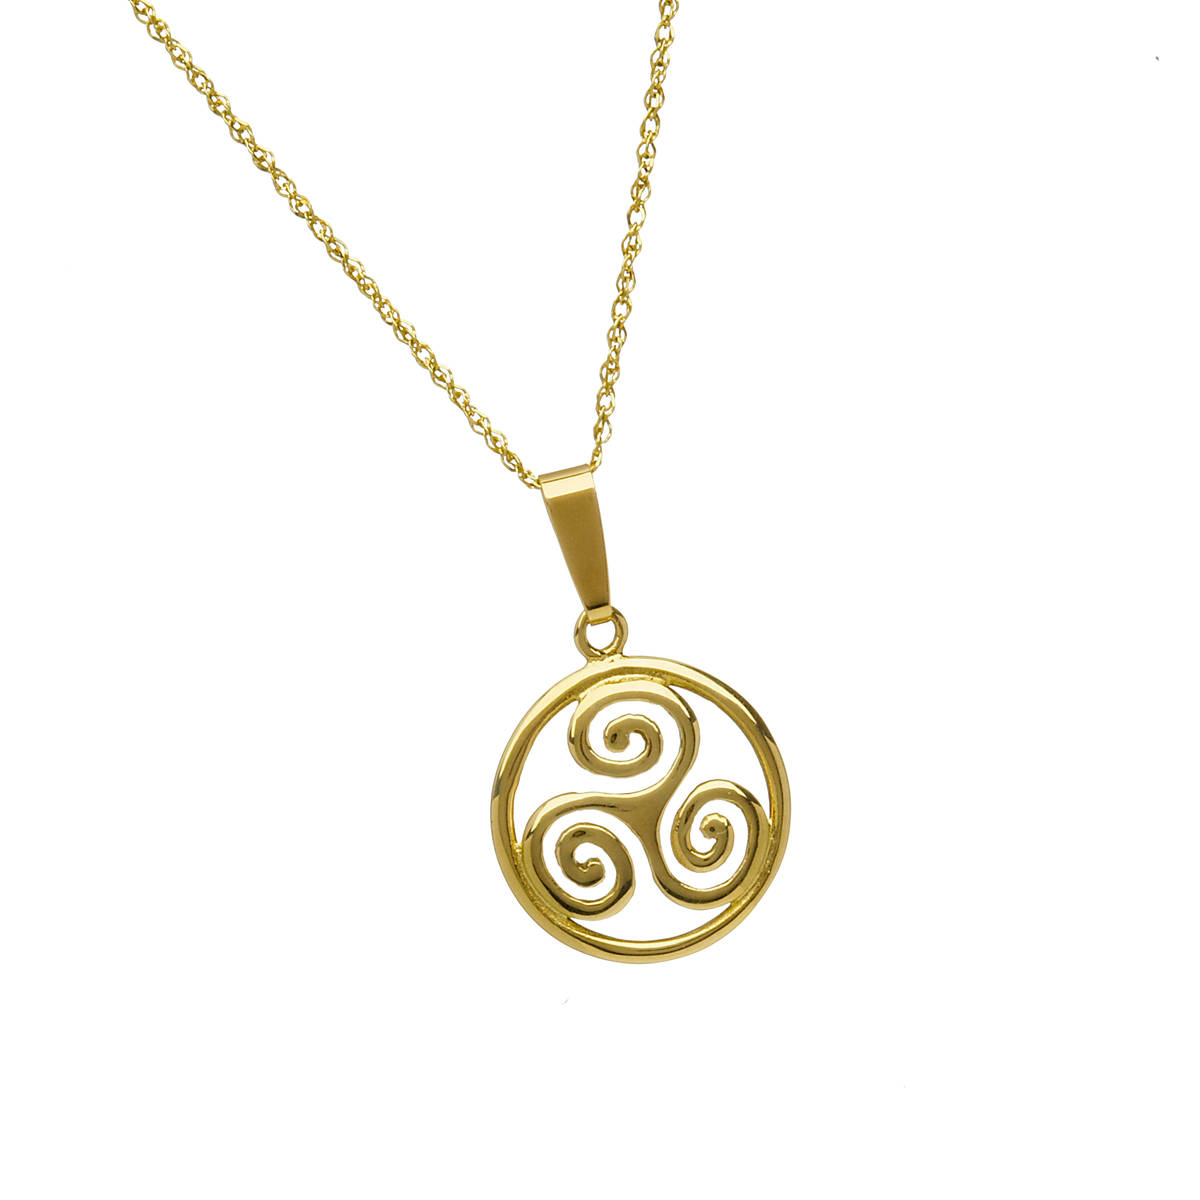 \n10 carat yellow gold circular celtic spiral pendant on 18 inch chain.\nThis triskele design is most attractive and should you desire this piece in white or rose gold please indicate your preference in the comment box on checking out.